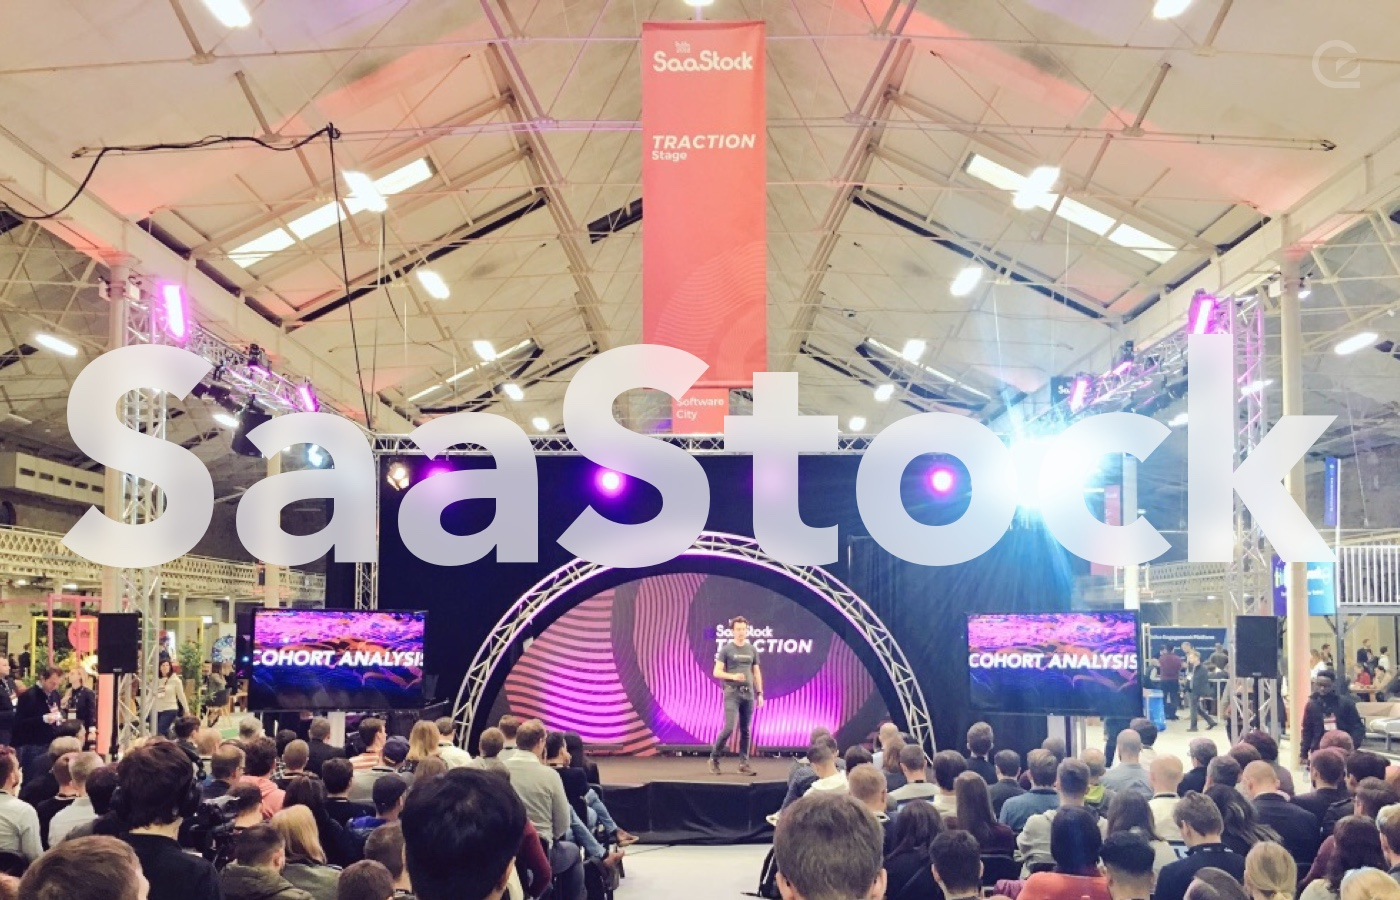 photo of James giving a talk to a crowd with SaaStock written over the photo